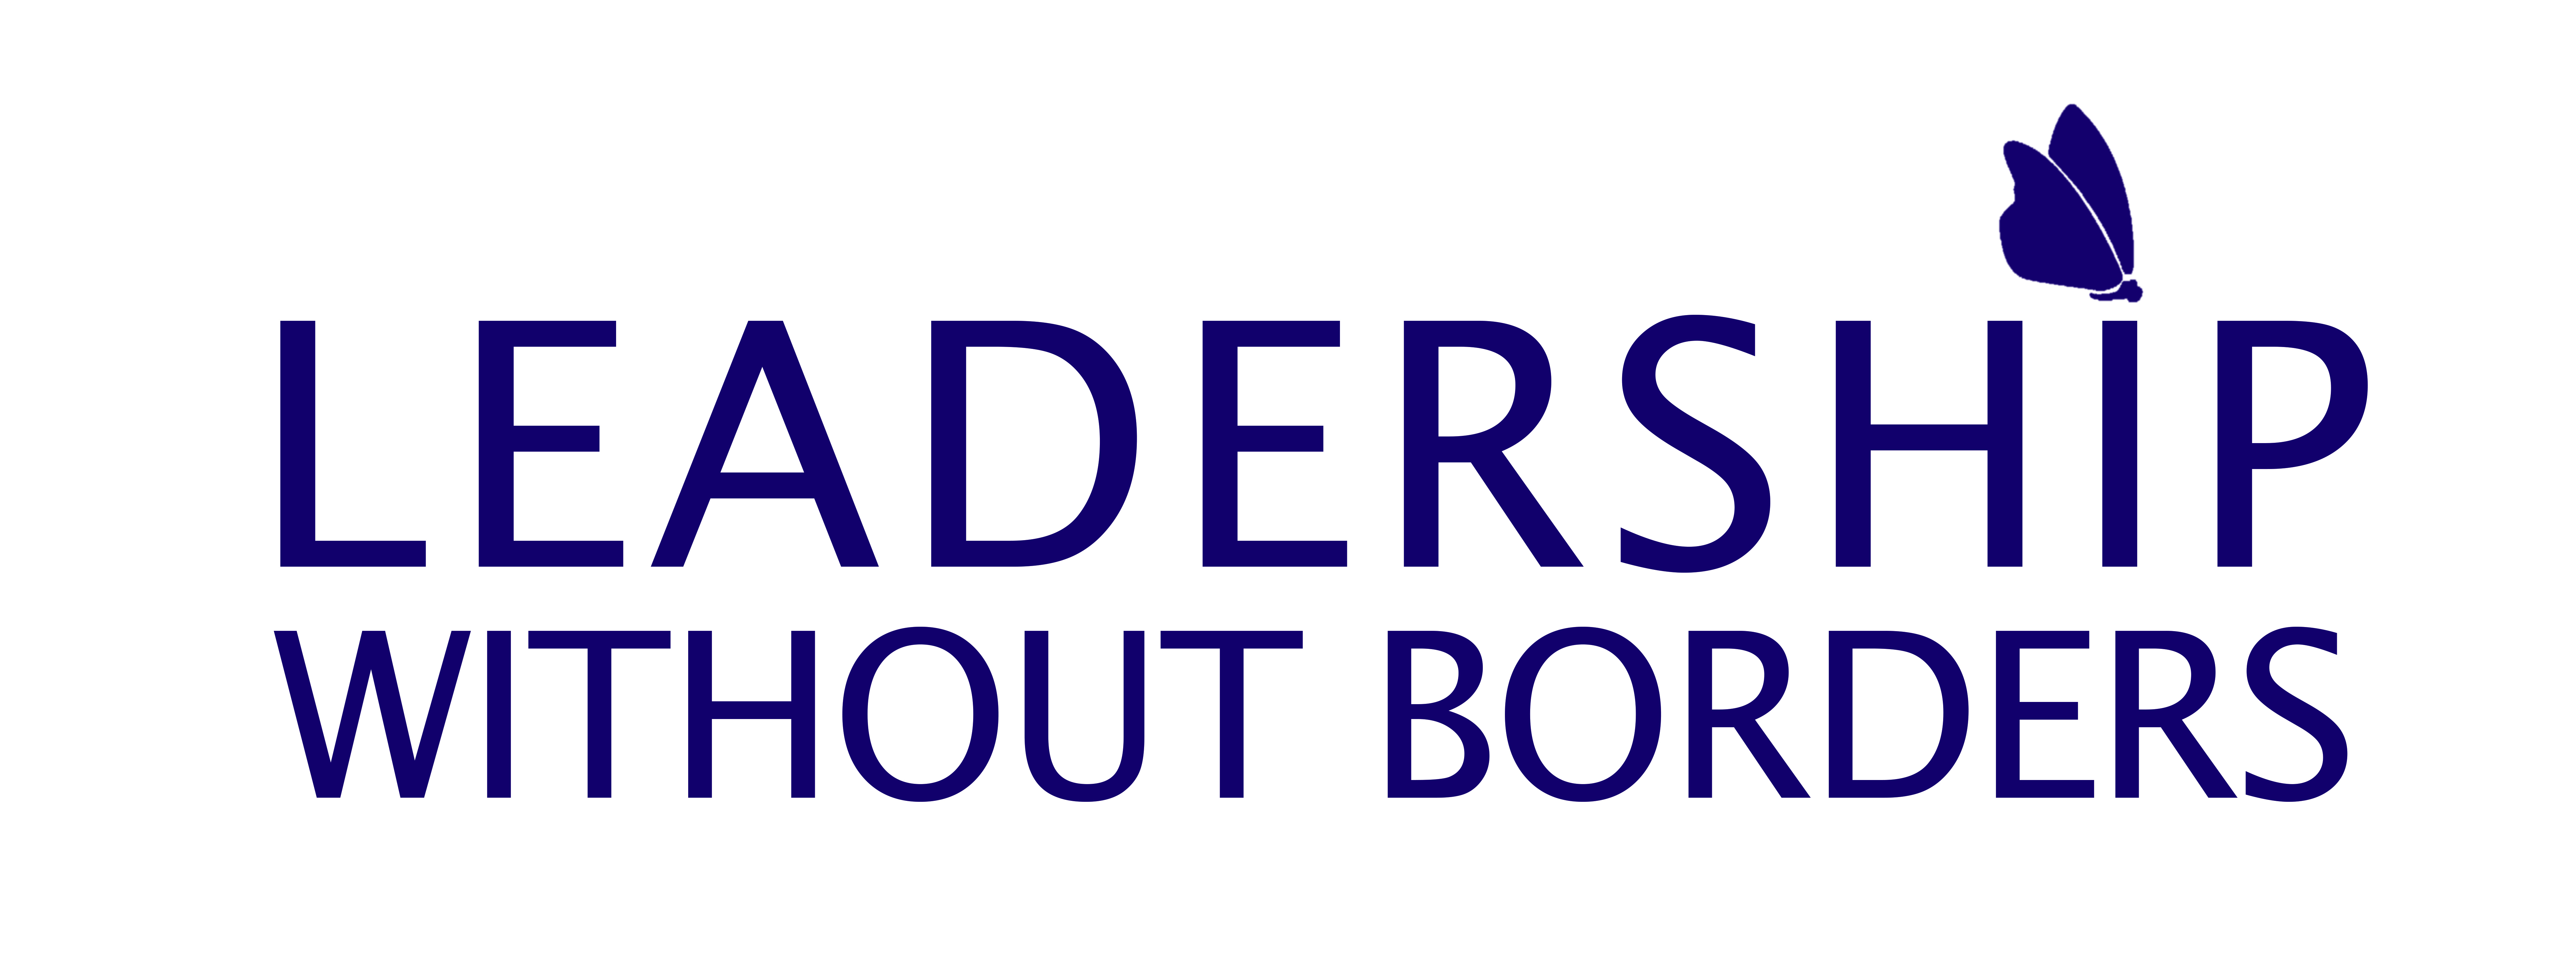 Without boarders banner SIMPLE 1-2